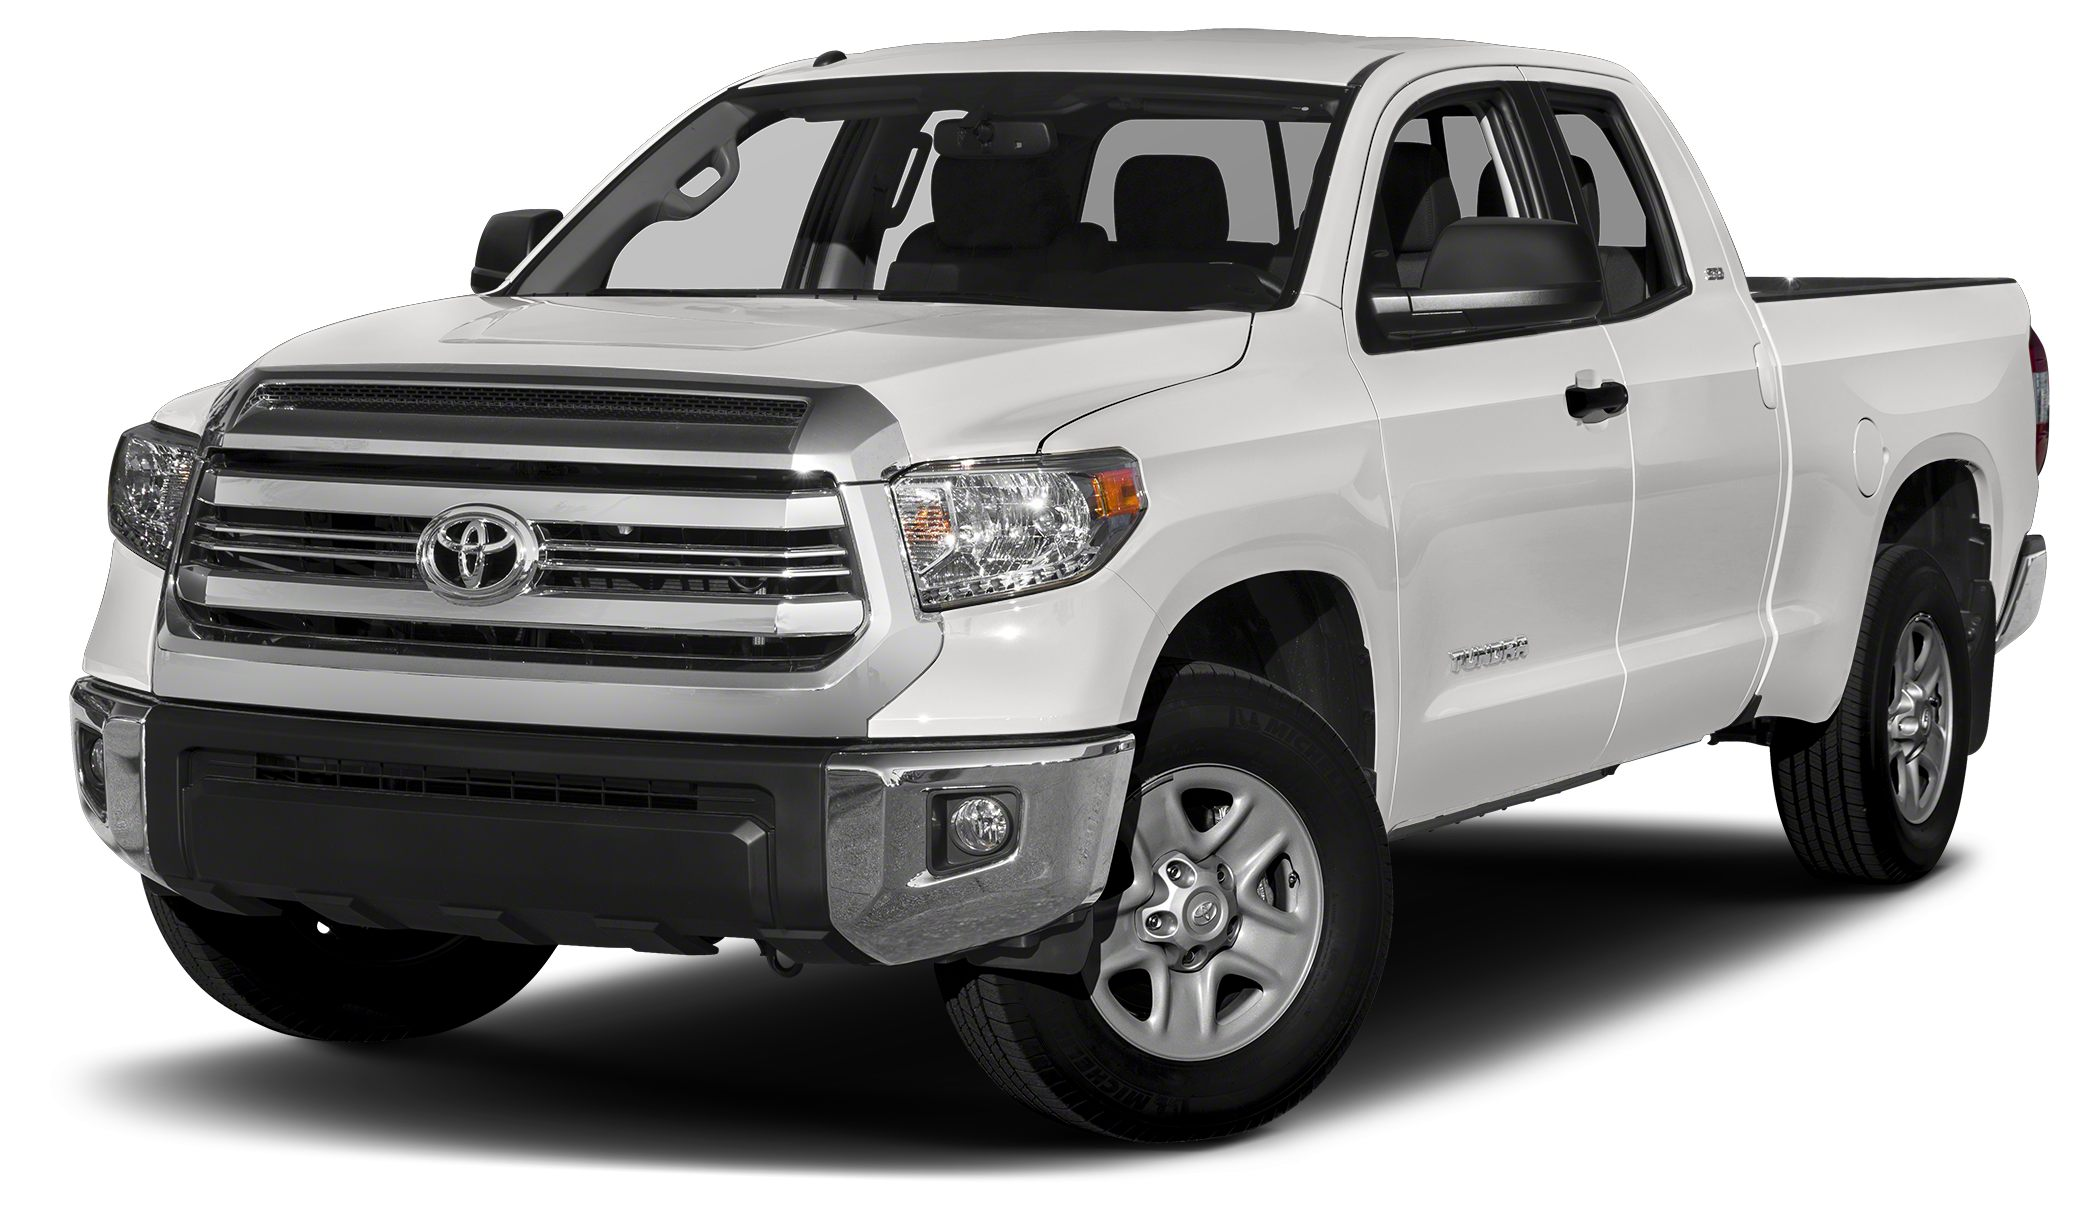 2017 Toyota Tundra SR5 SR5 trim SUPER WHITE exterior and GRAPHITE interior iPodMP3 Input Bluet